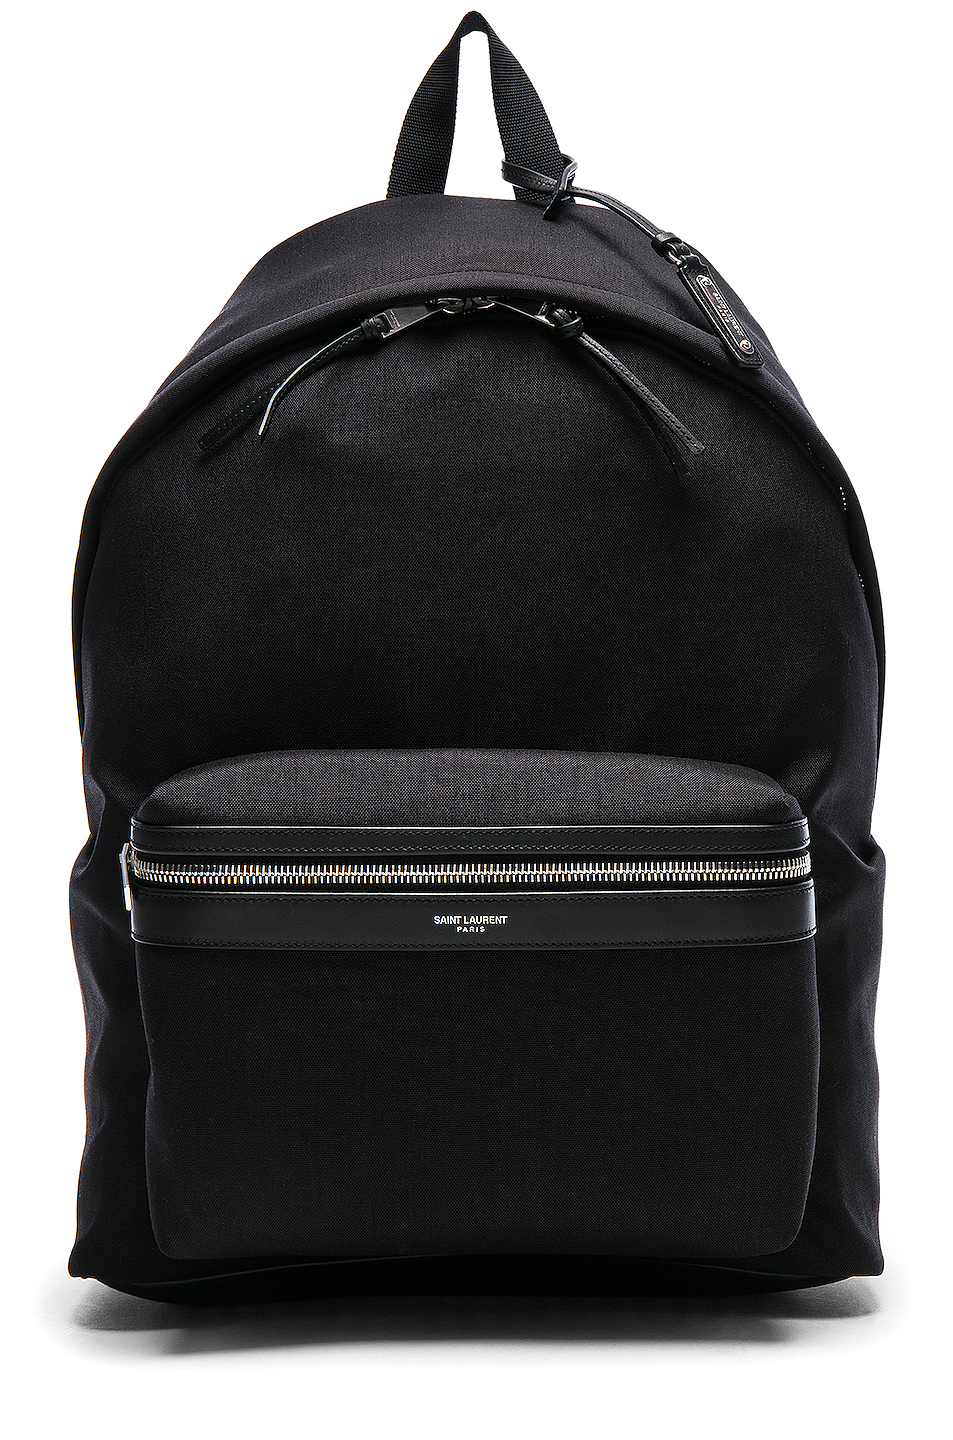 Photo of Saint Laurent Backpack in Black - shop Saint Laurent menswear